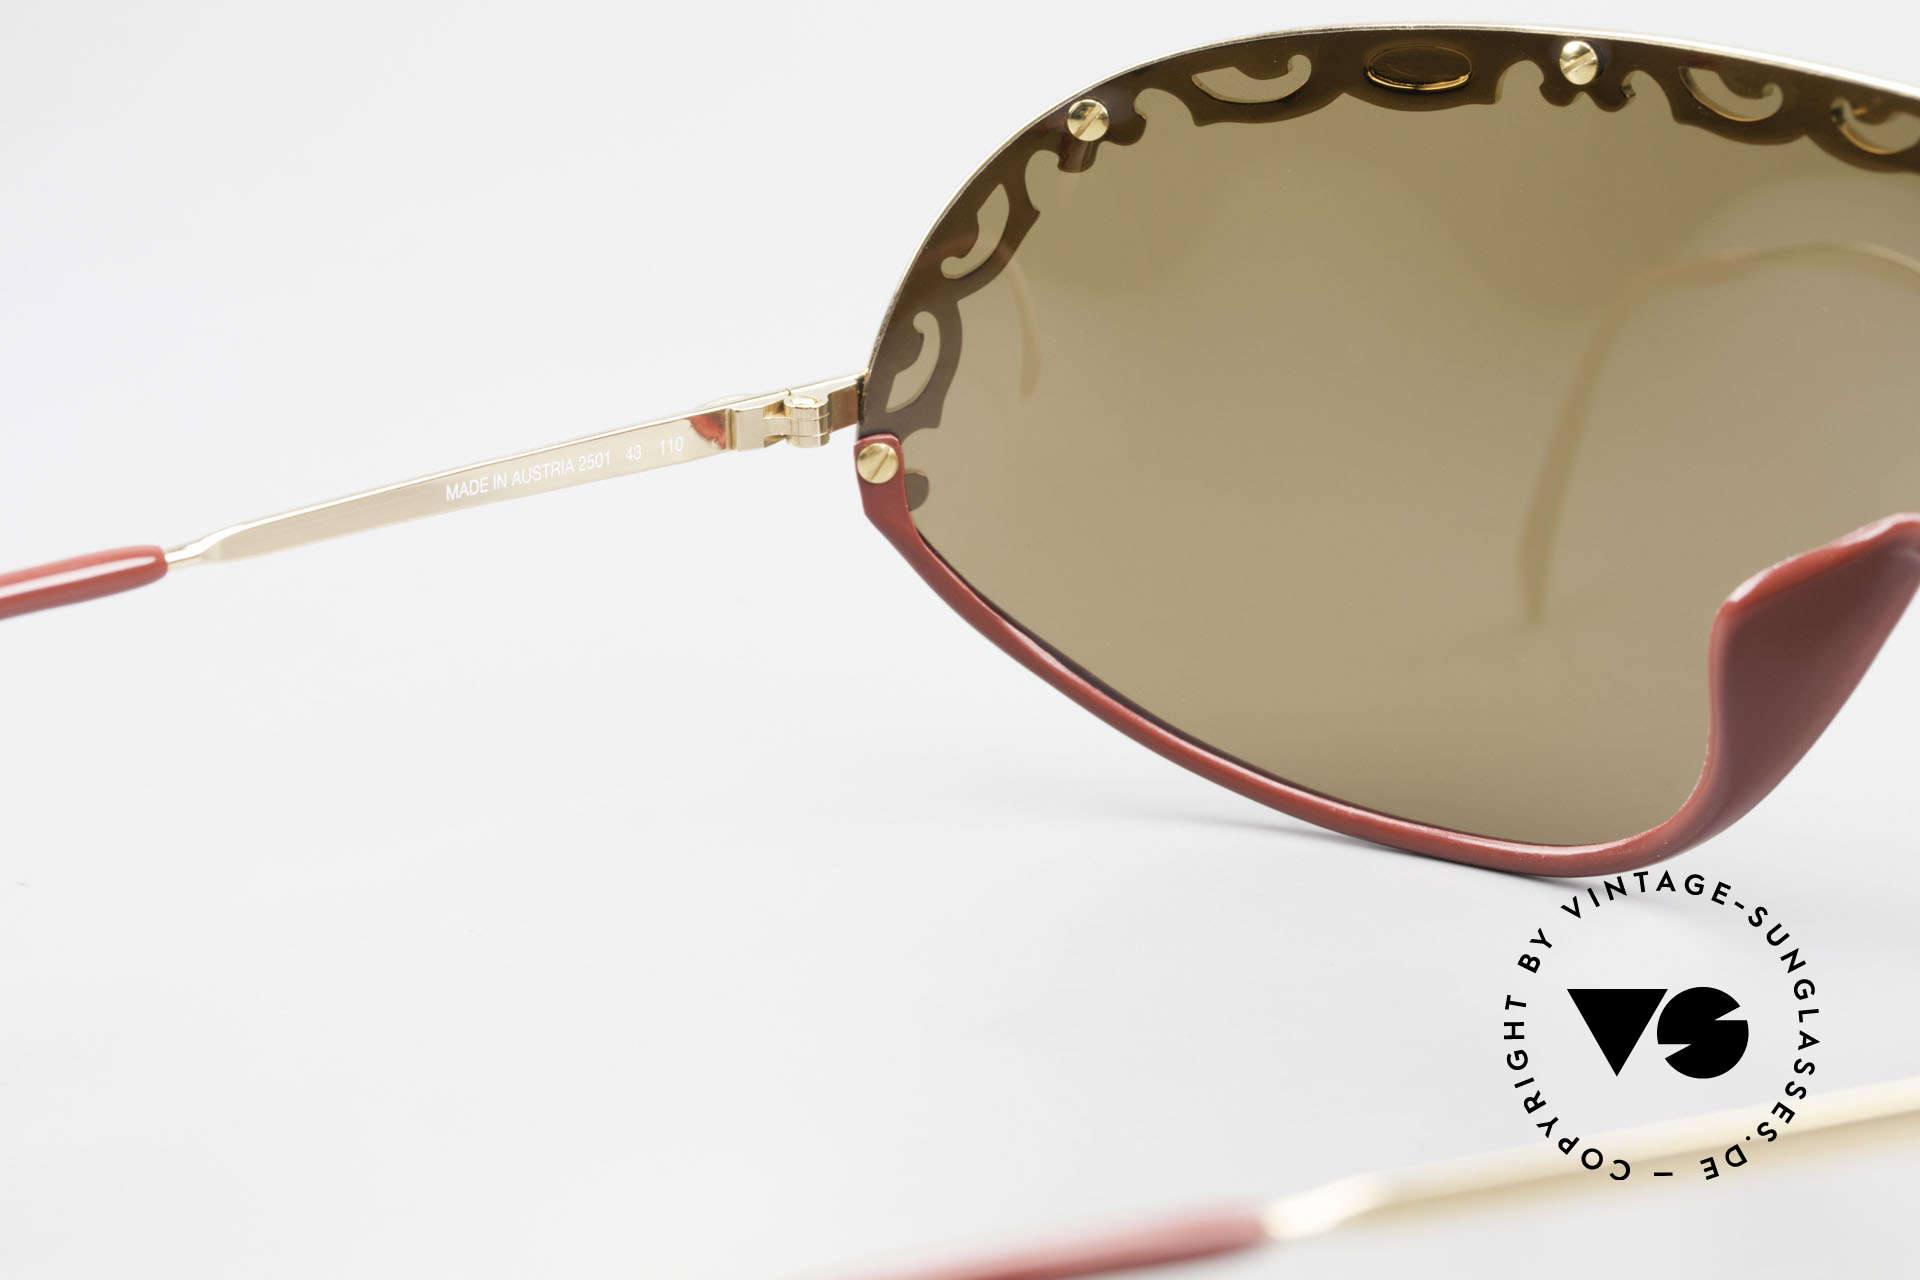 Christian Dior 2501 Panorama View Sunglasses 80's, NO RETRO sunglasses, but a 30 years old vintage rarity, Made for Women